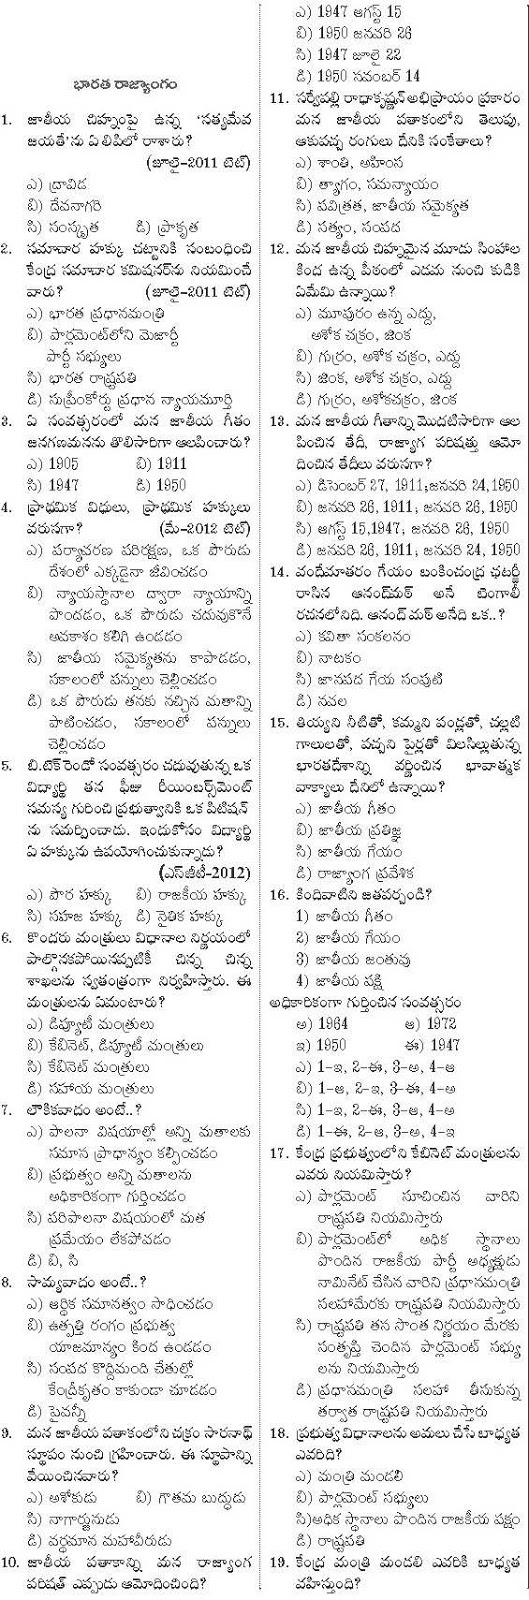 Appsc Telugu medium mcq bits material for government jobs in Andhra Pradesh. useful for Indian Polity section of General Studies.